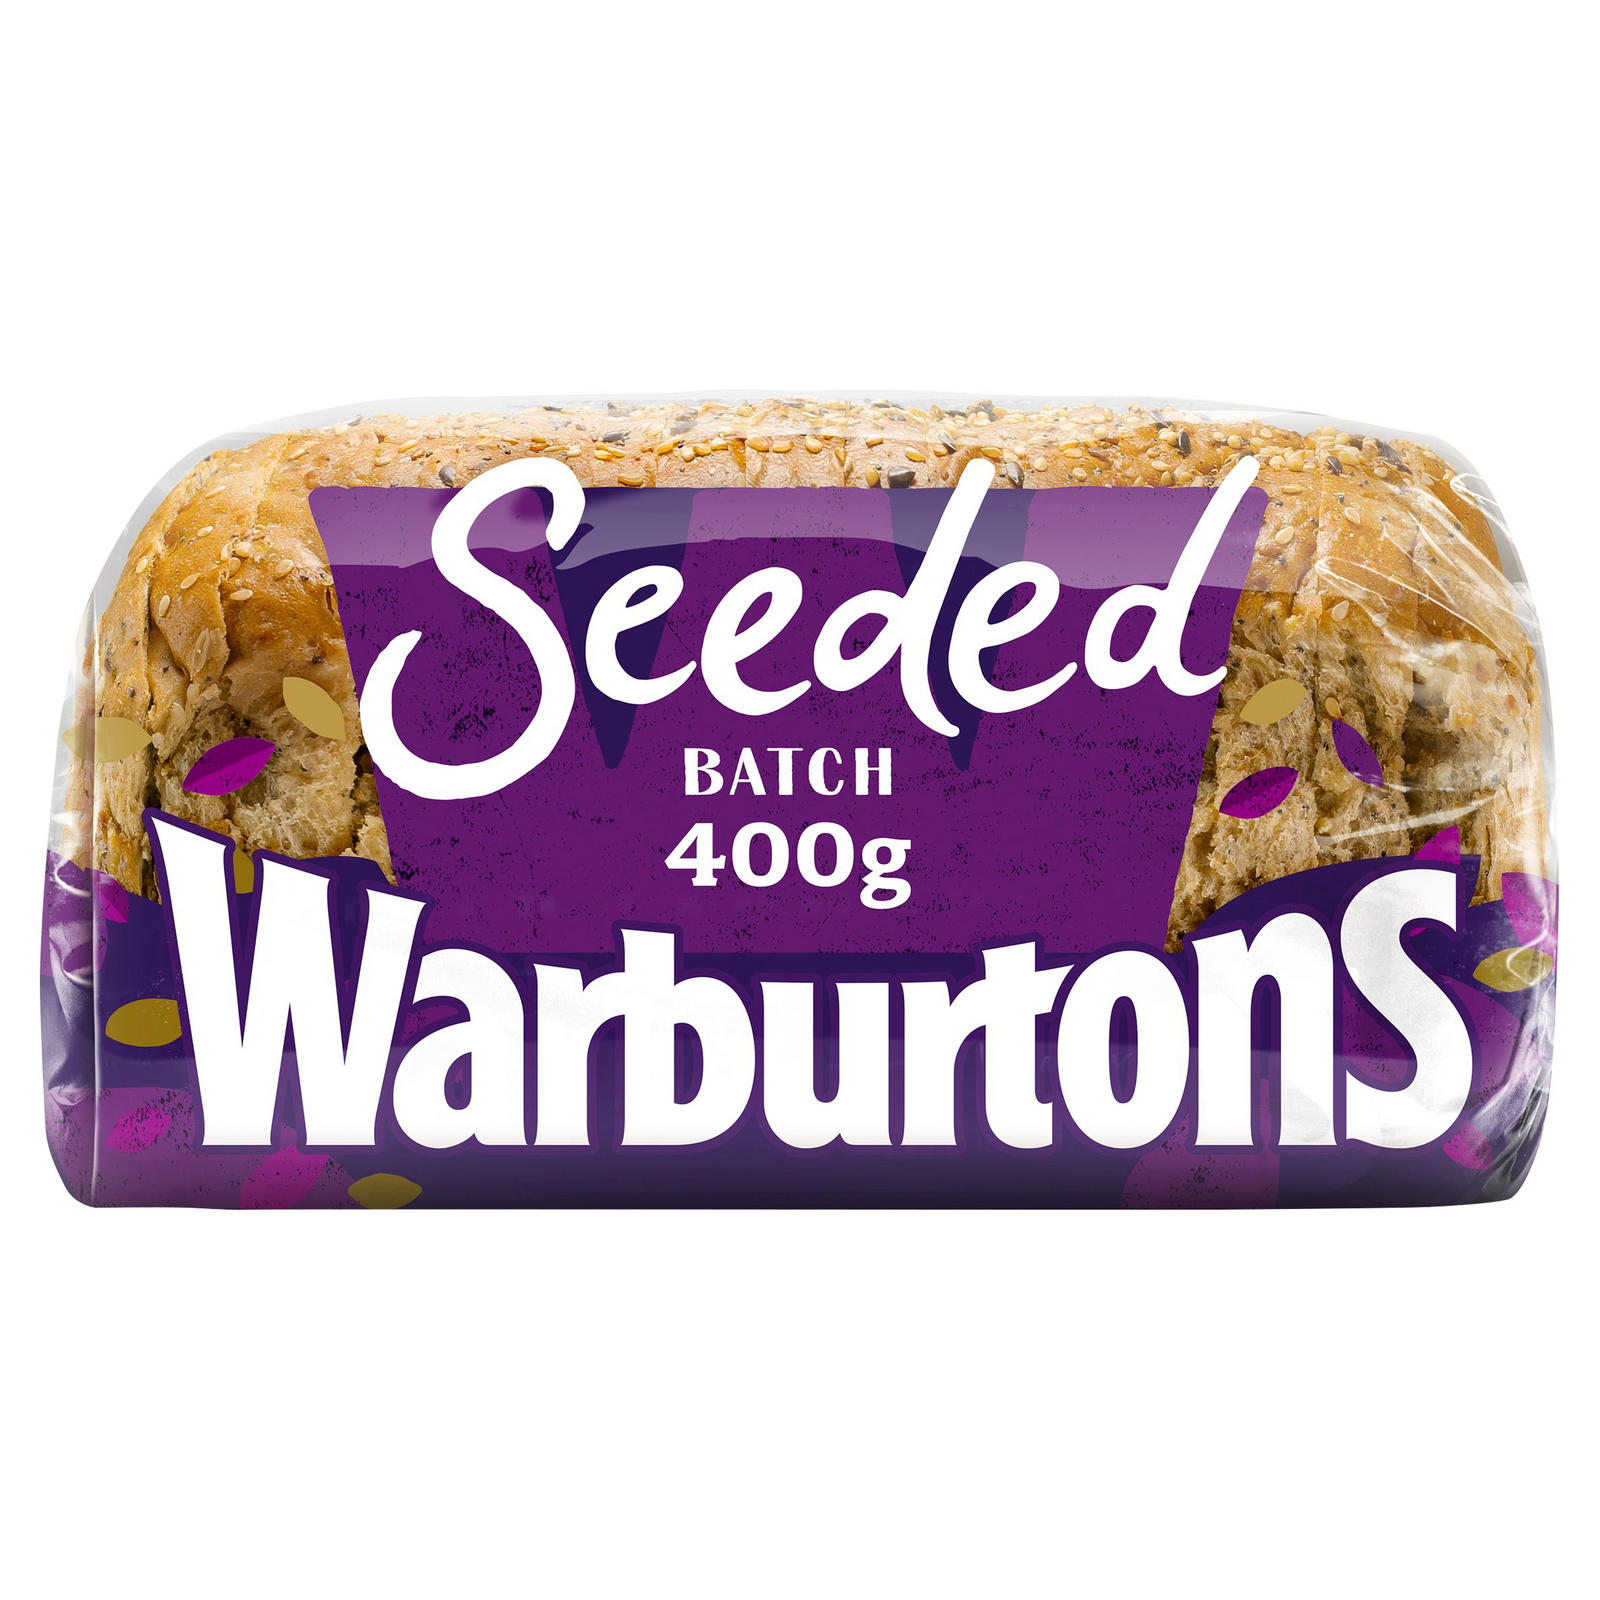 Warburtons Original Seeded Batch 400g